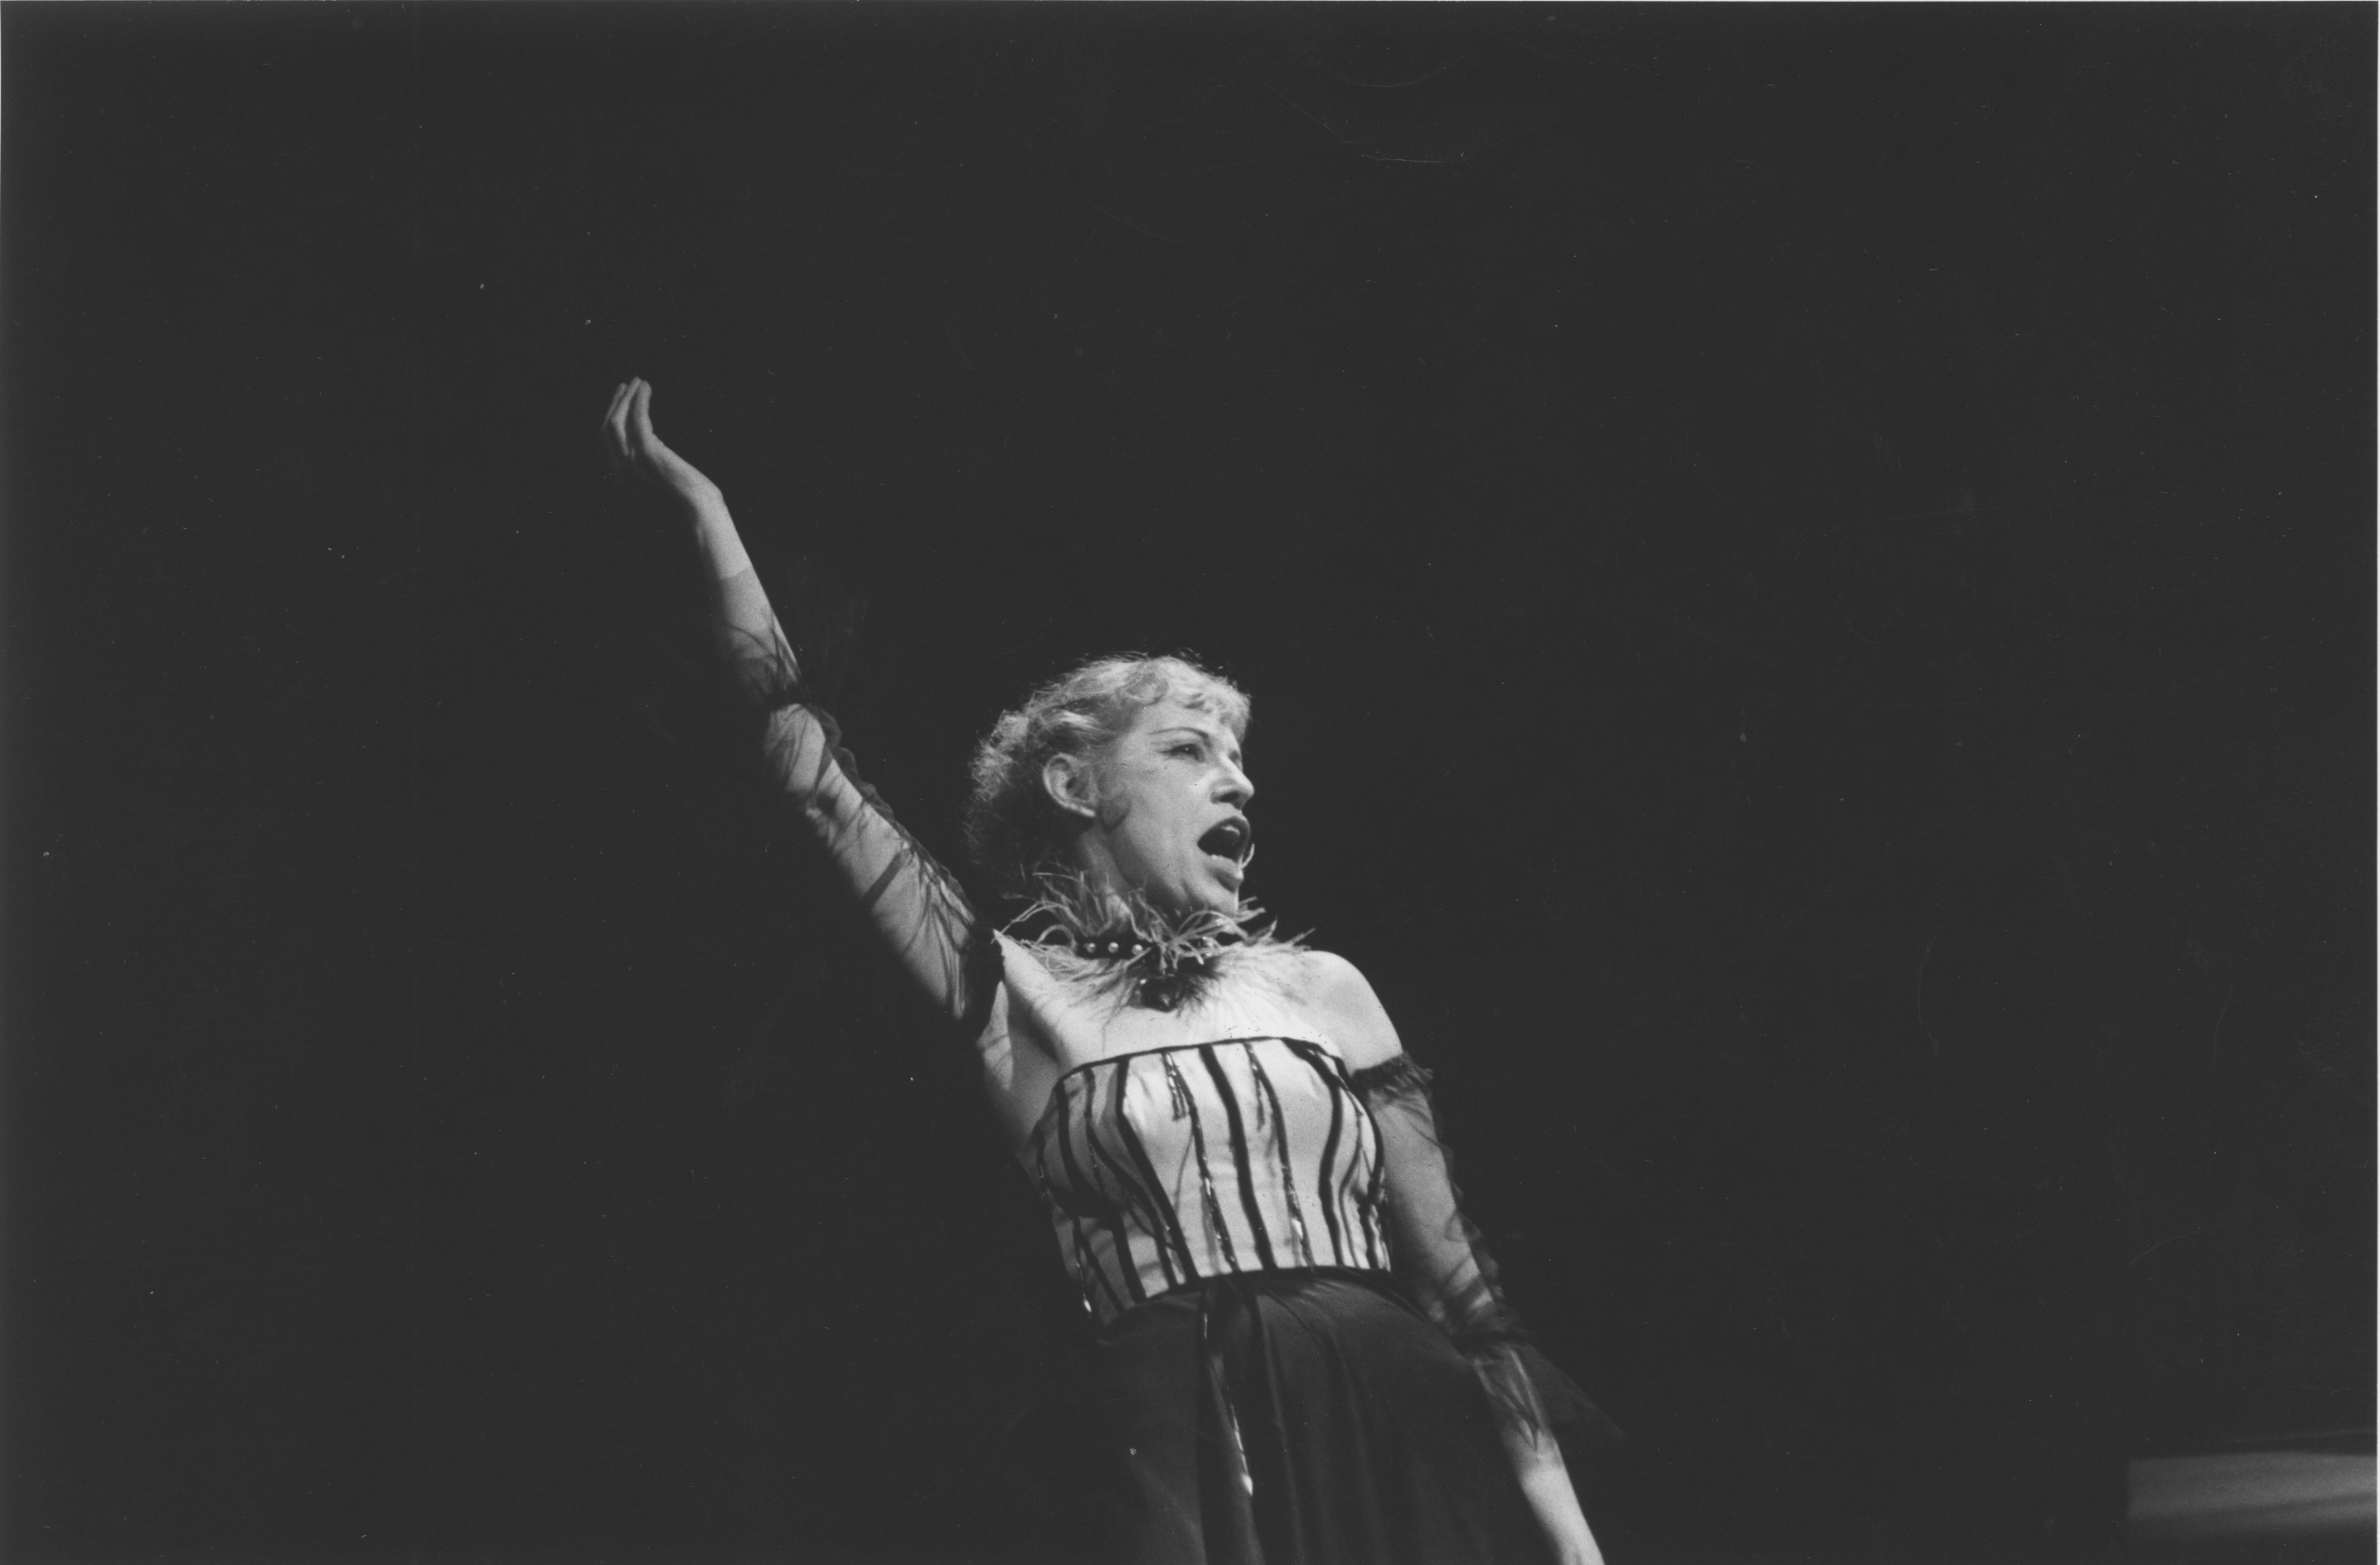 Lotte Lenya performing in The THREEPENNY OPERA